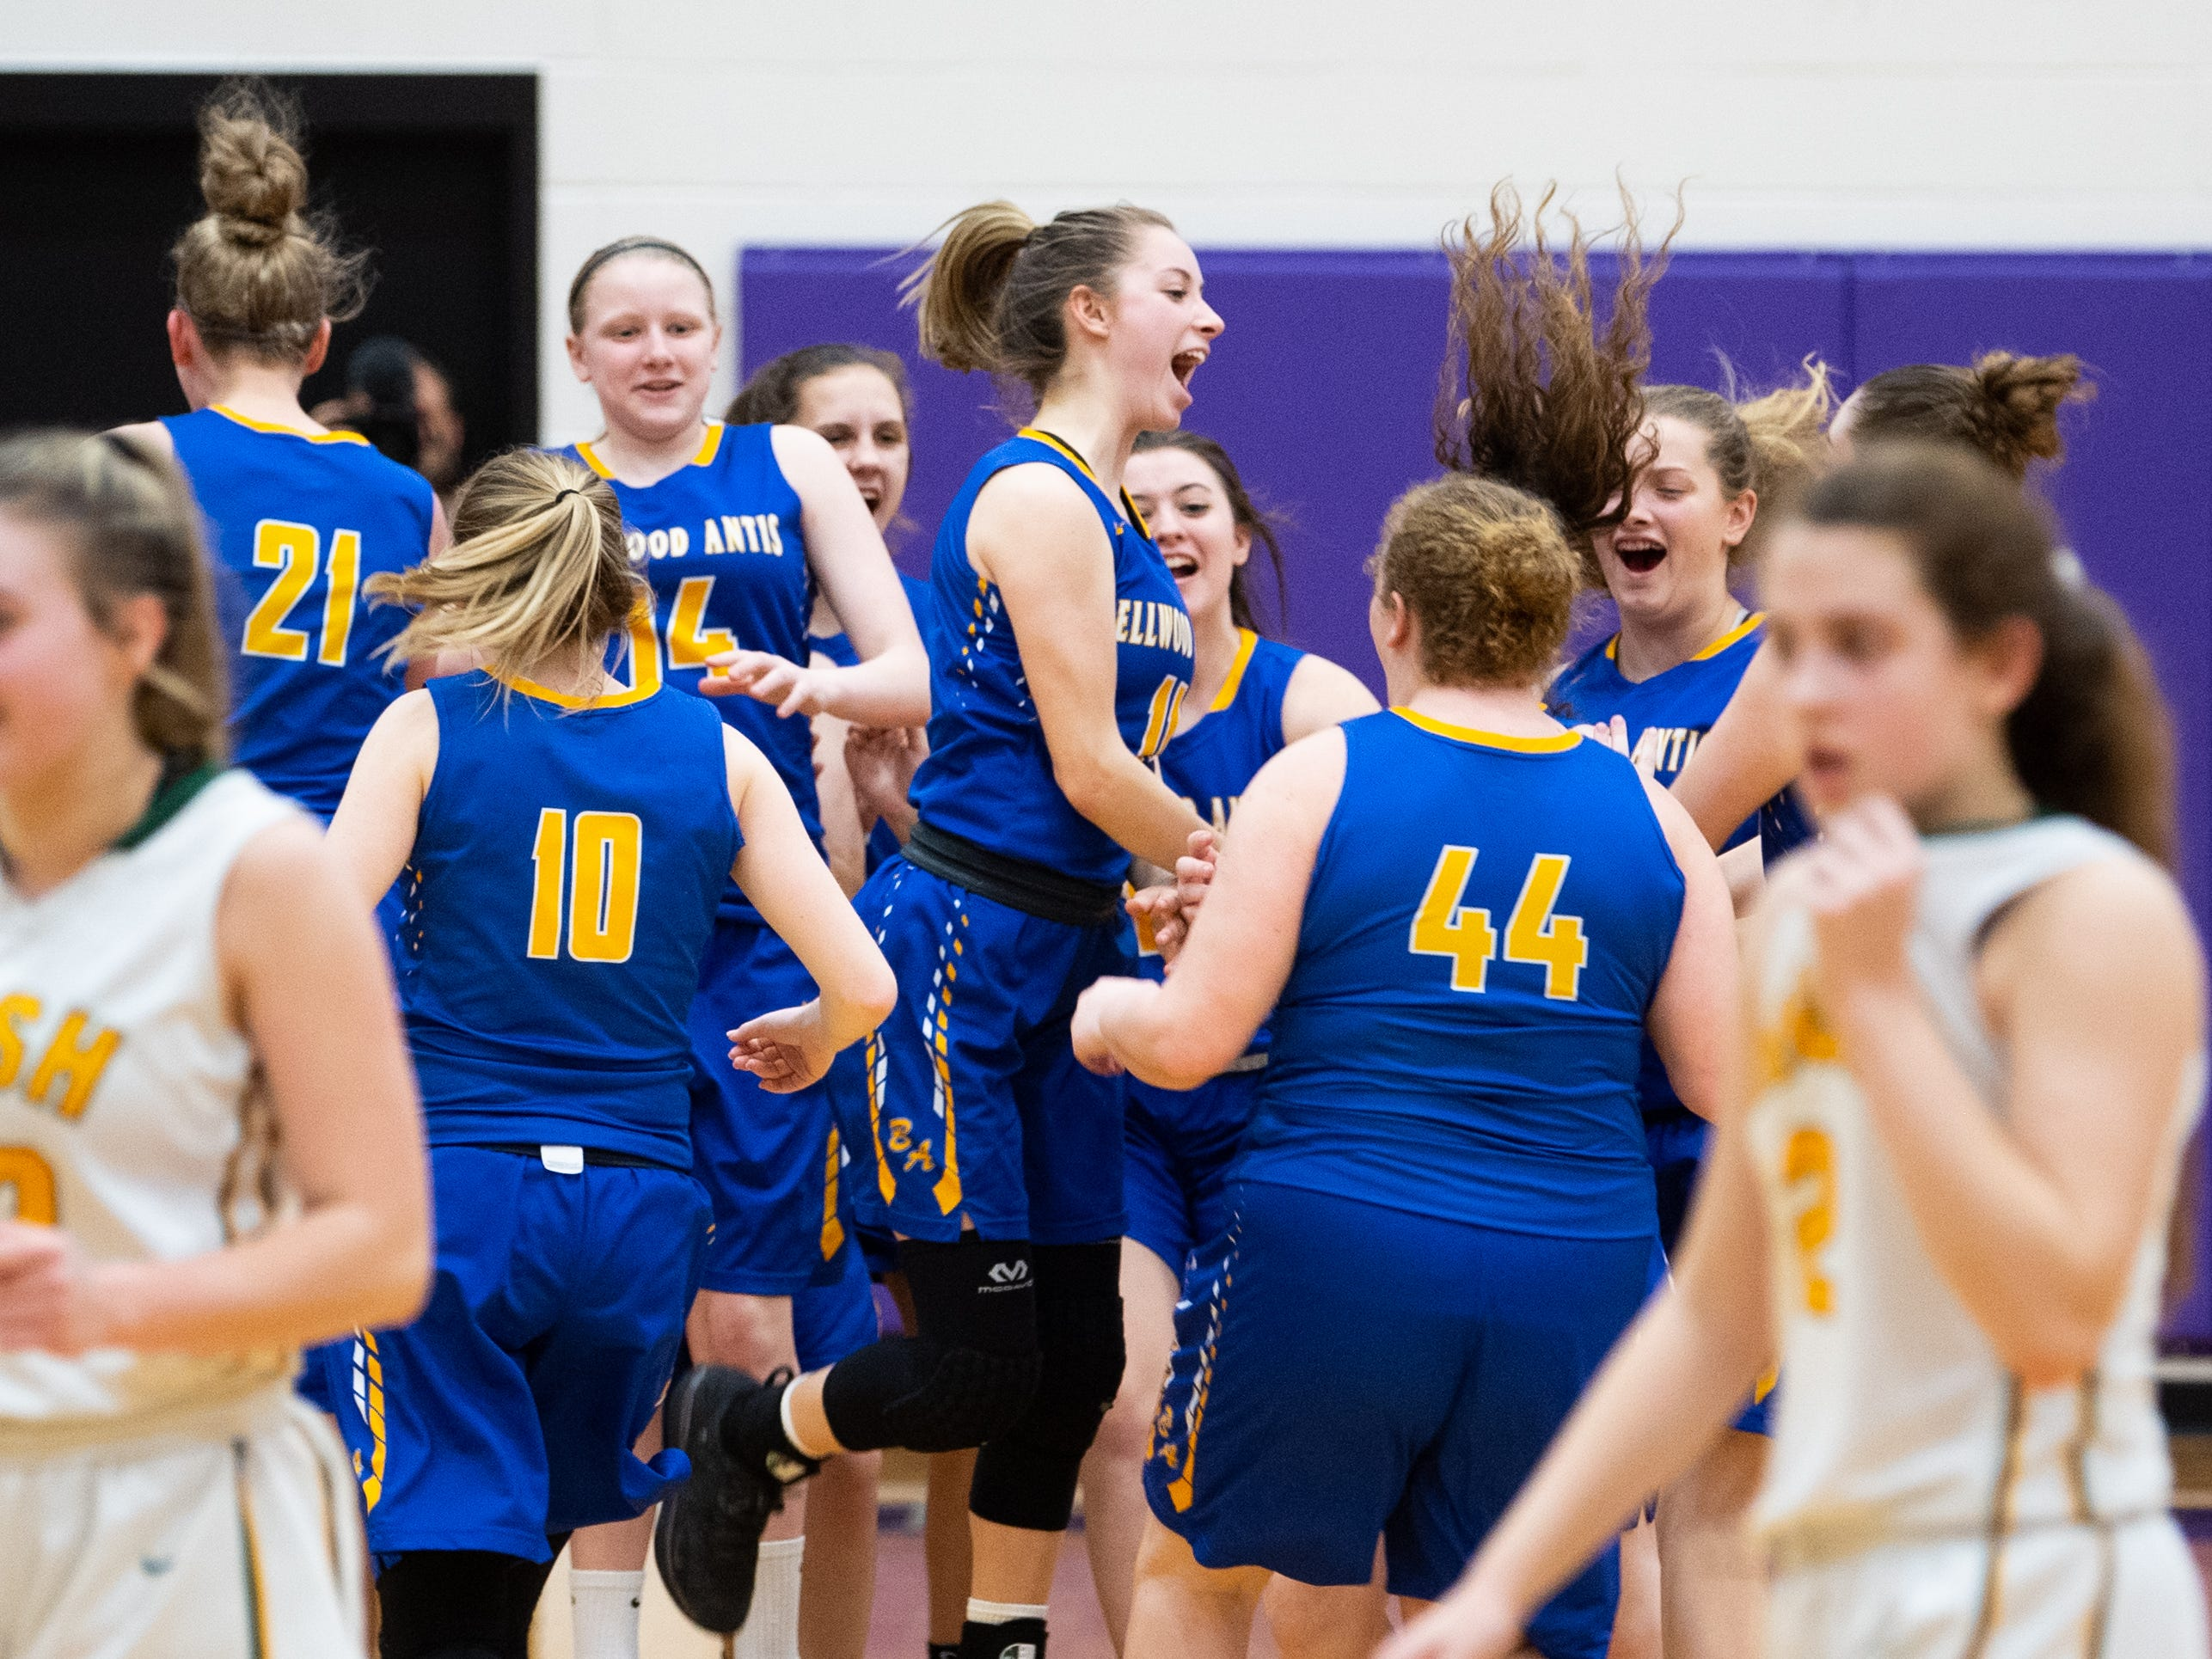 Bellwood-Antis celebrates after defeating York Catholic in the PIAA girls' basketball game, March 15, 2019 at Mifflin County High School. The Fighting Irish lost to the Lady Blue Devils 53 to 47.